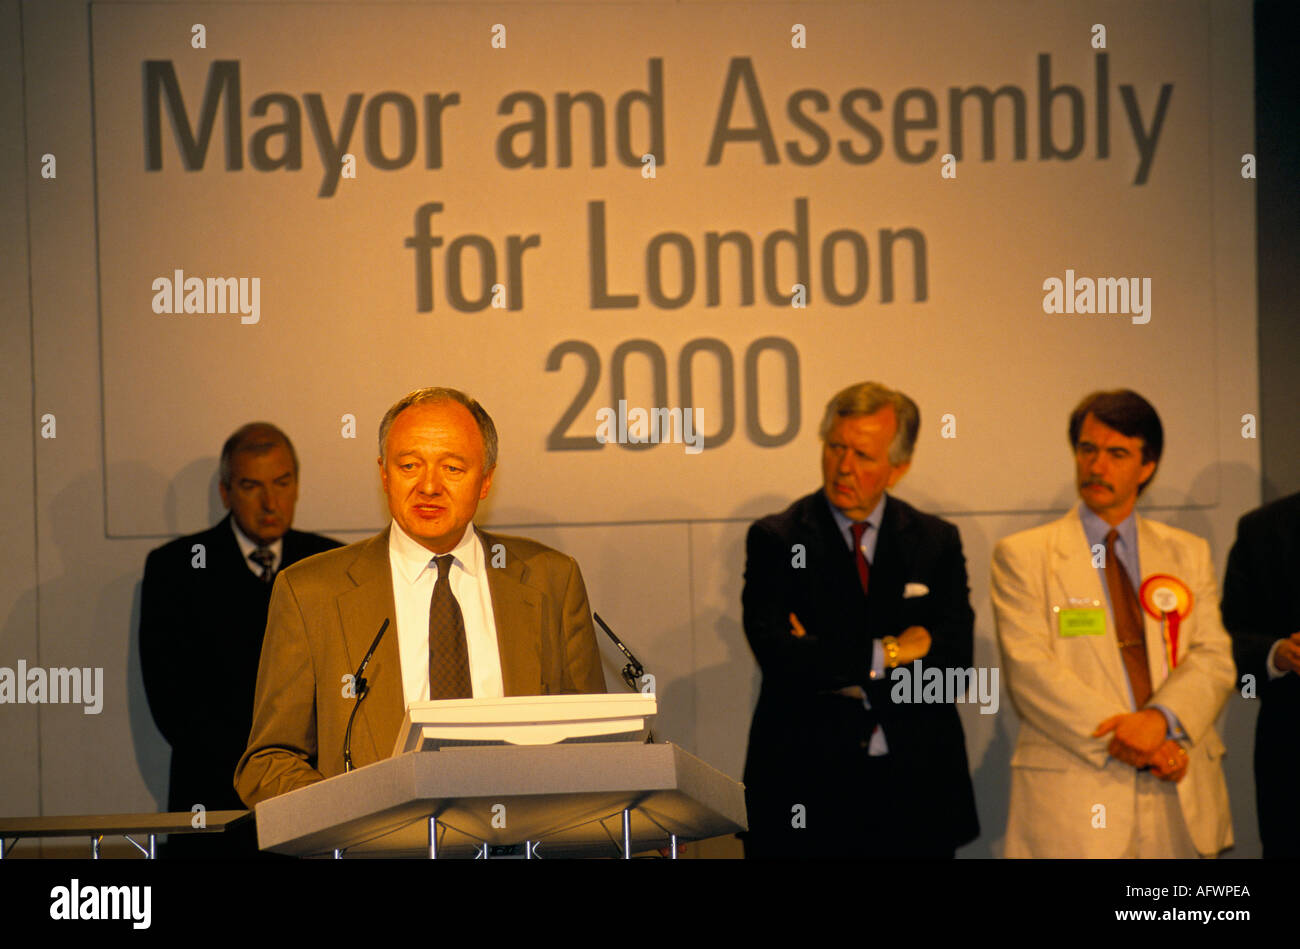 KEN LIVINGSTONE LONDON MAYOR ELECTION DAY 1 5 00 FATIGUE IS APPARENT AS THE LONG CAMPAIGN DRAWS TO A CLOSE 2000 - Stock Image